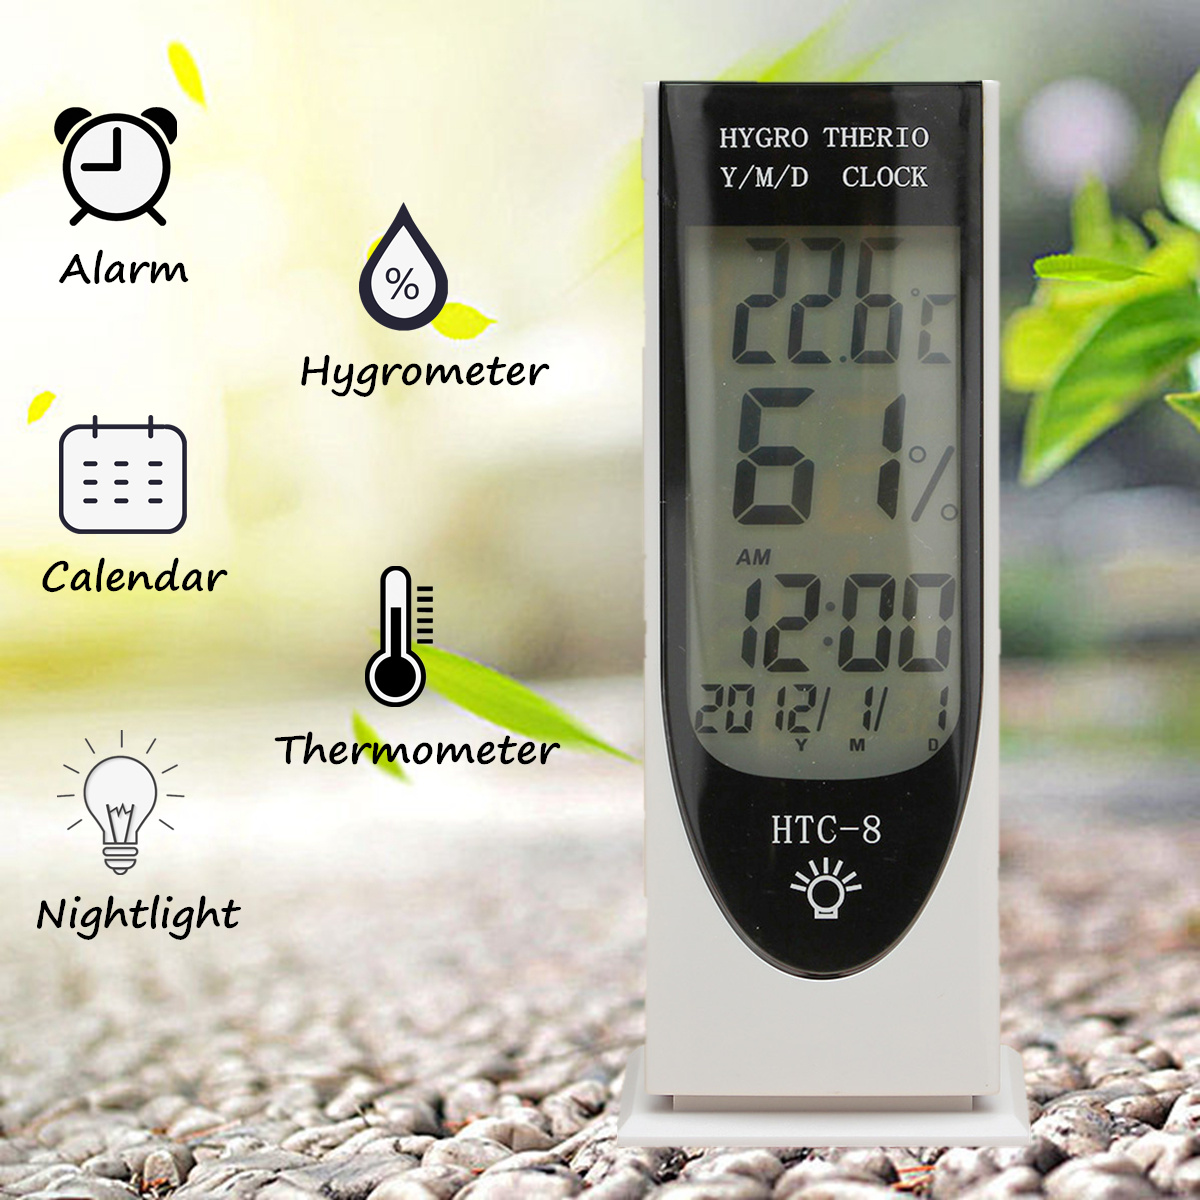 Digital Large LCD Alarm Clock Thermometer Calendar Hygrometer with Night Light